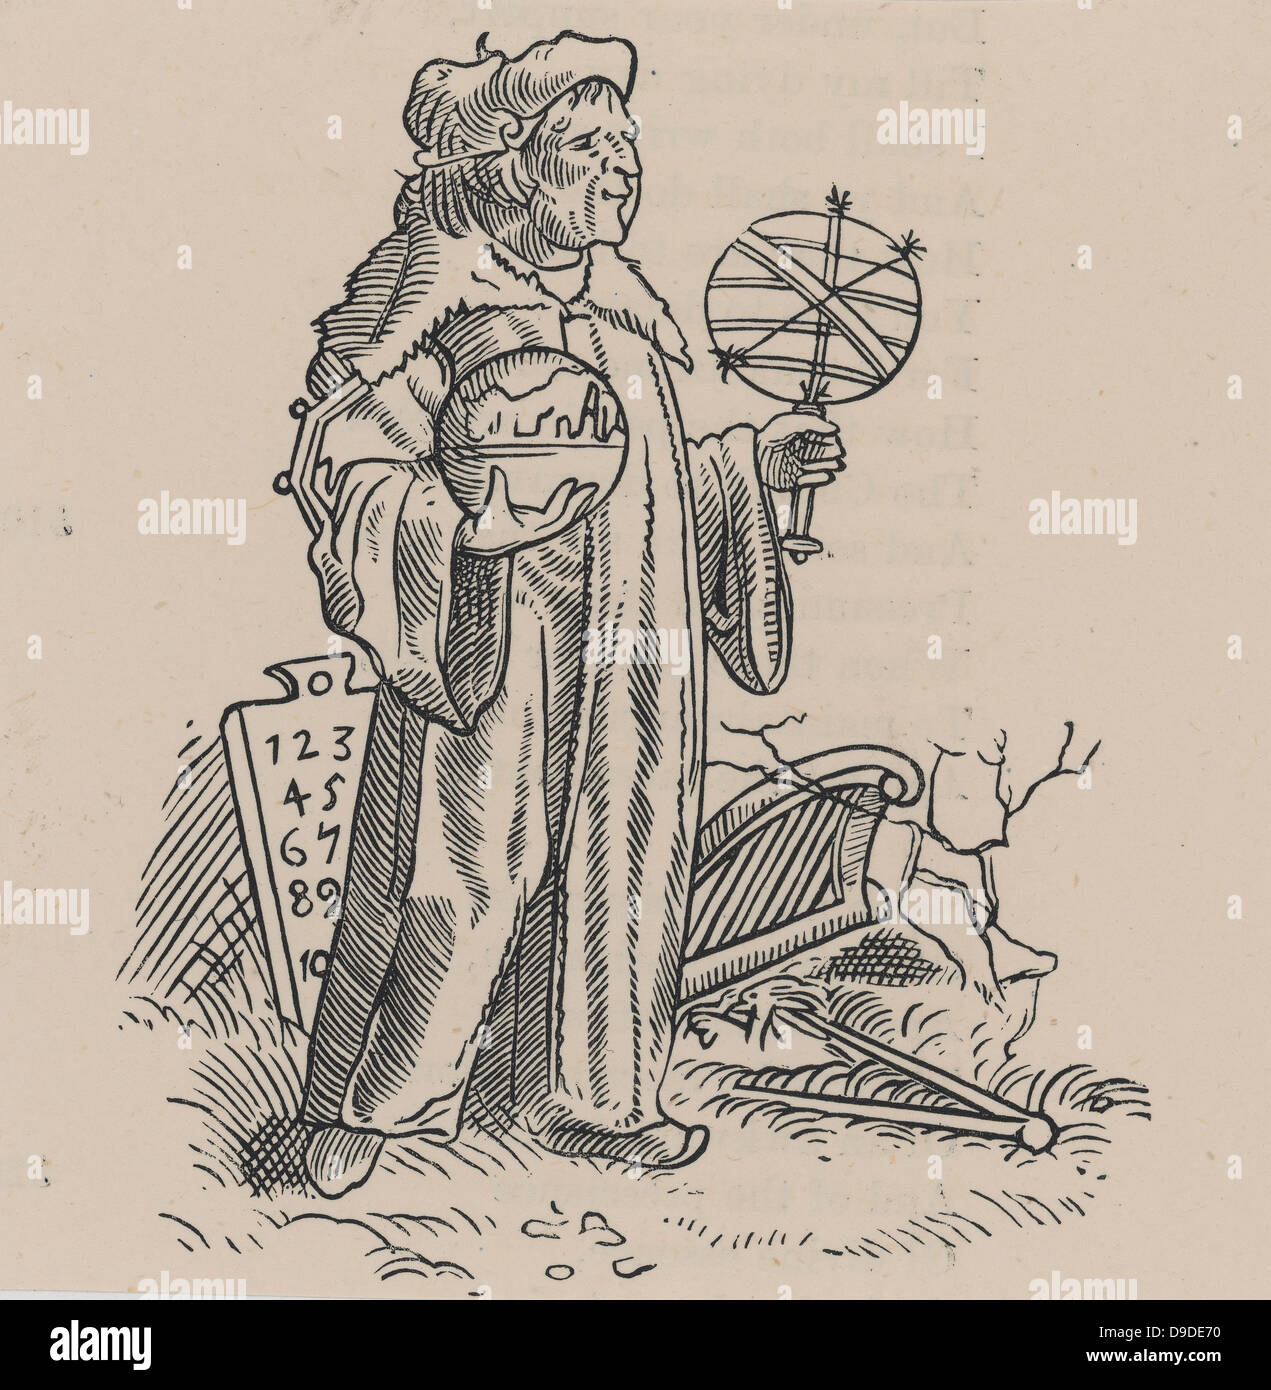 Woodcut of a sixteenth century astrologer/astronomer and his instruments. Sixteenth century woodcut. - Stock Image